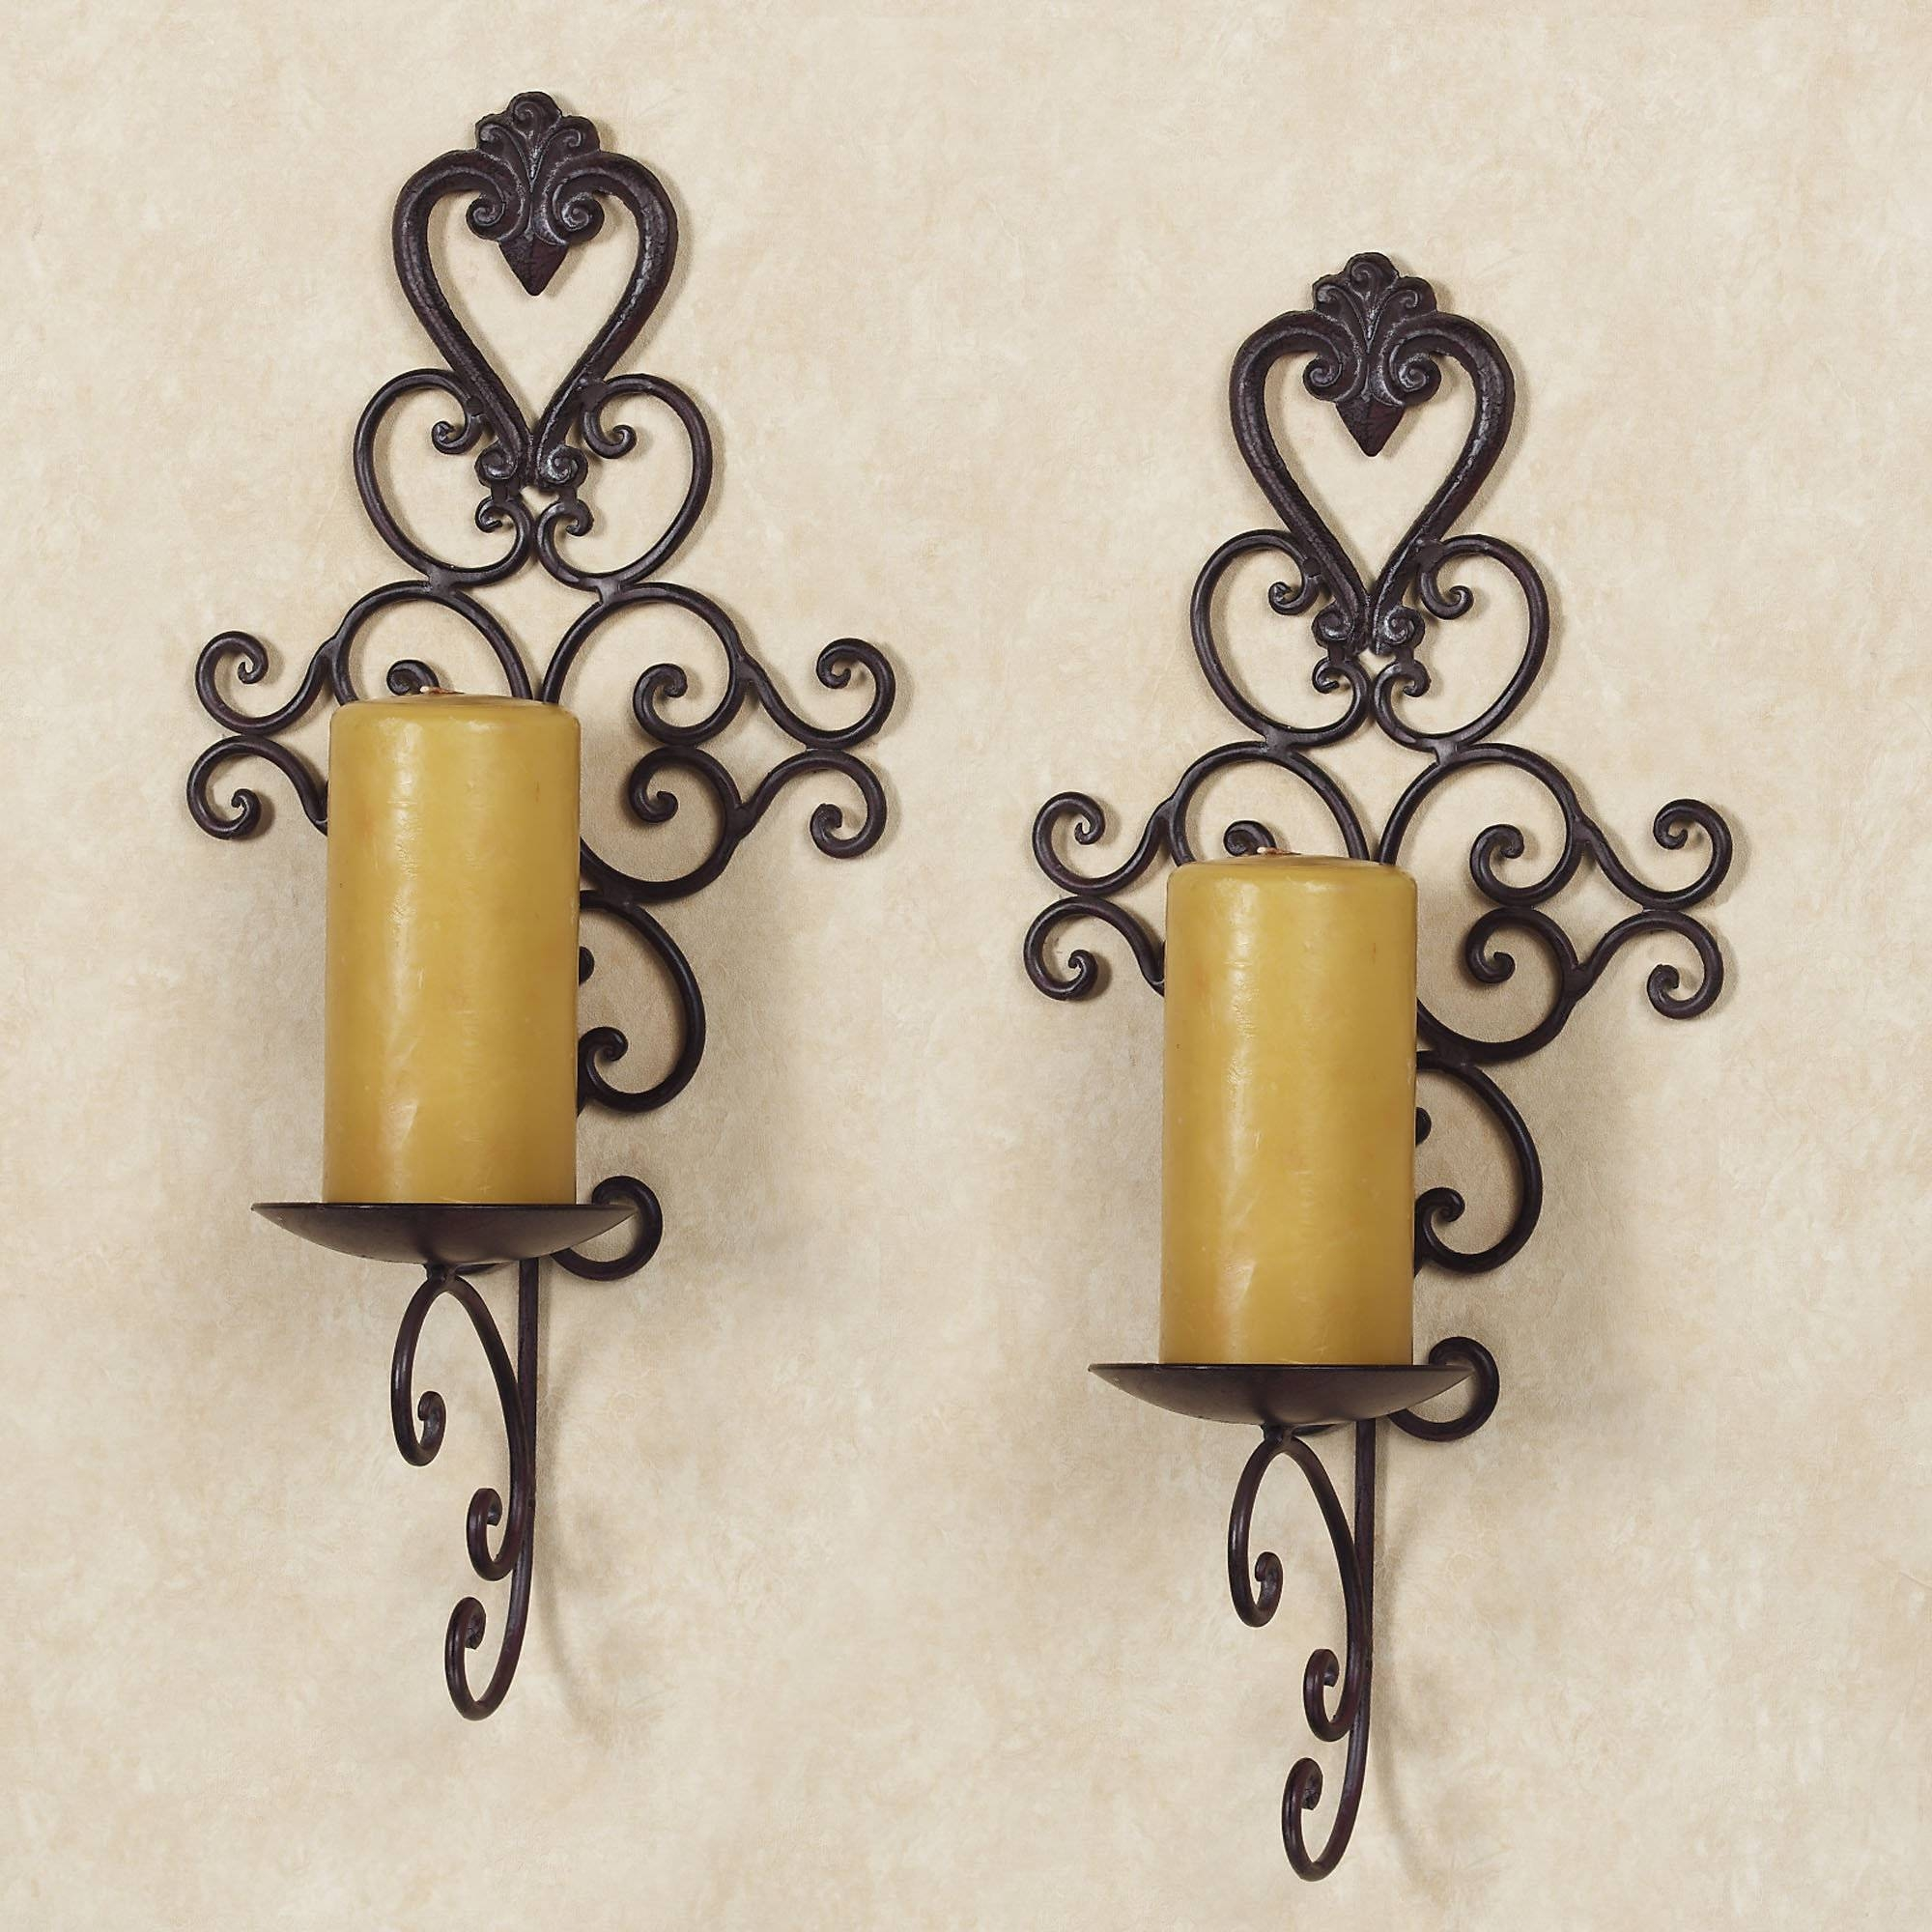 20 Best Metal Wall Art With Candle Holders